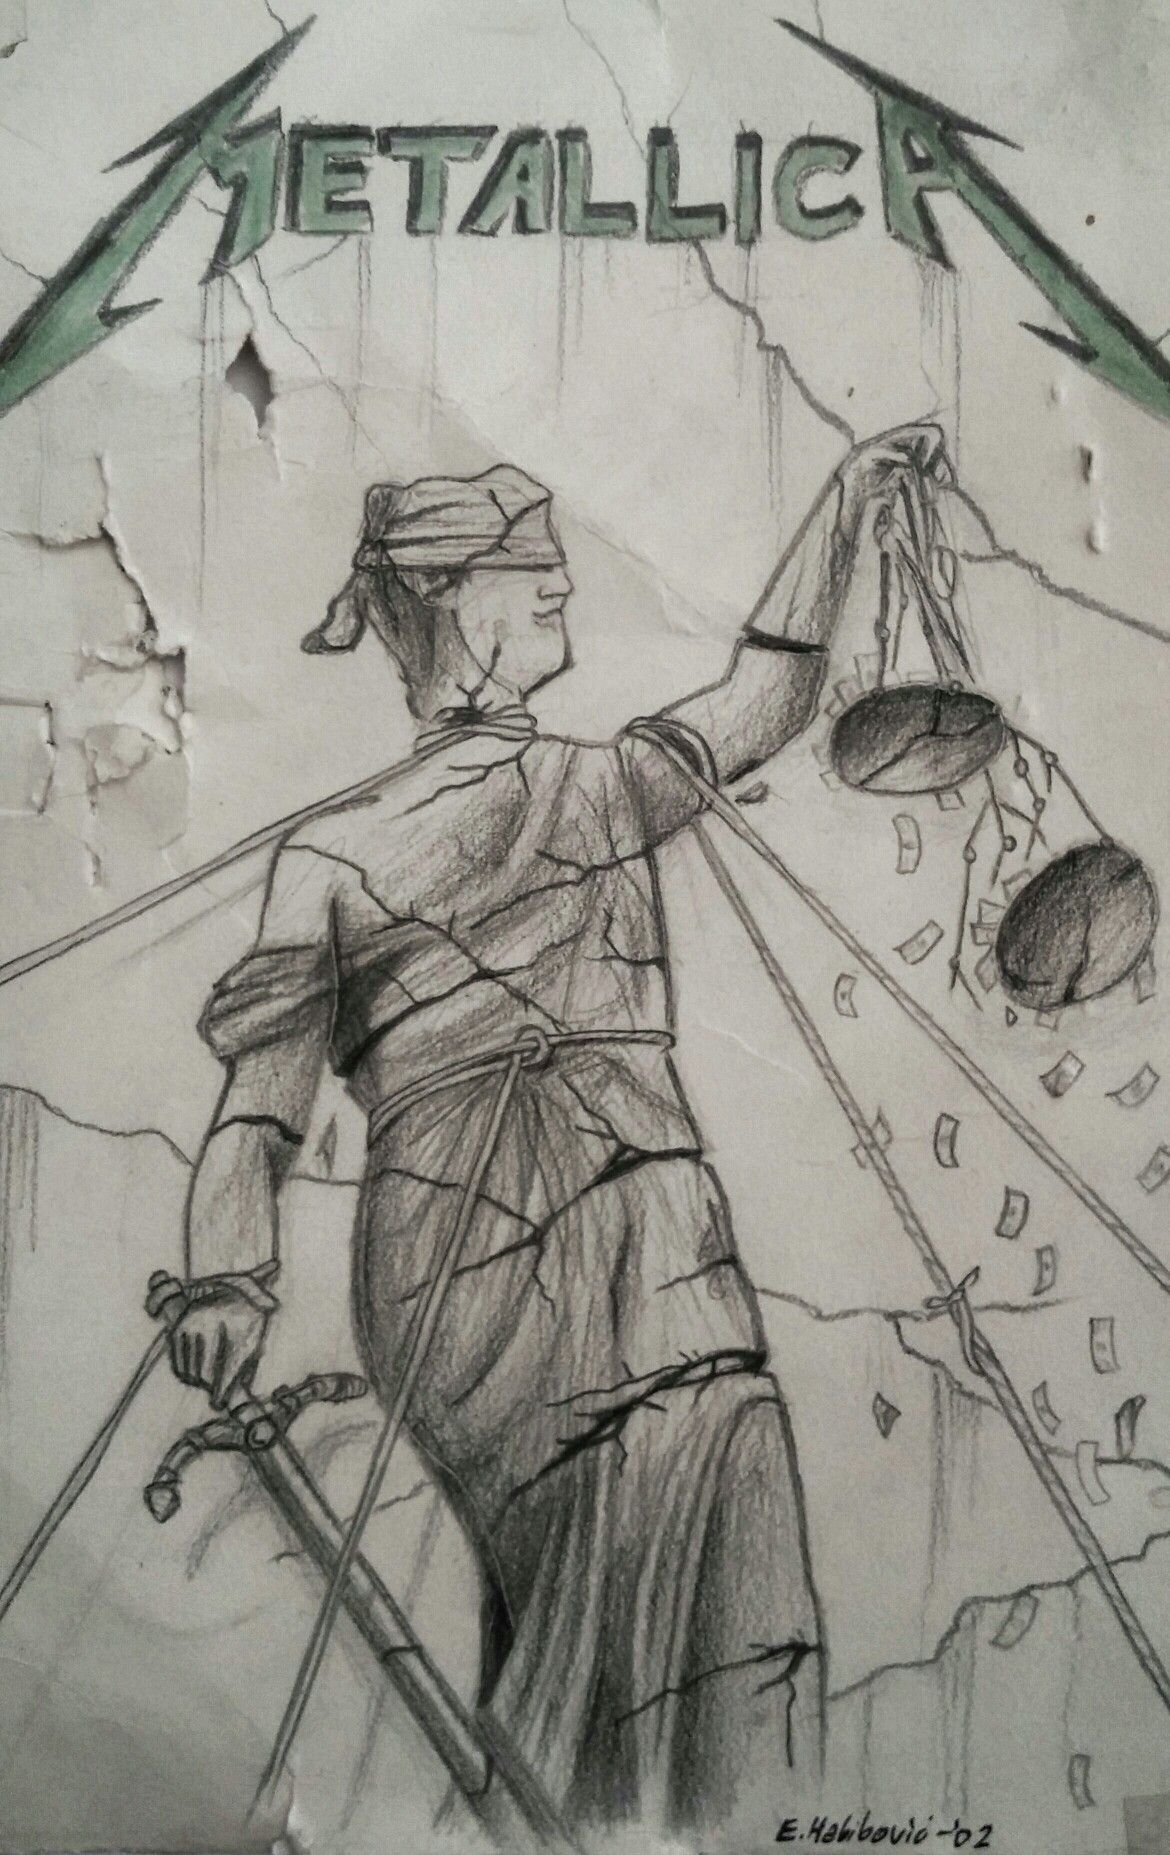 """Metallica - ...and justice for all"" album cover. Pencil ..."